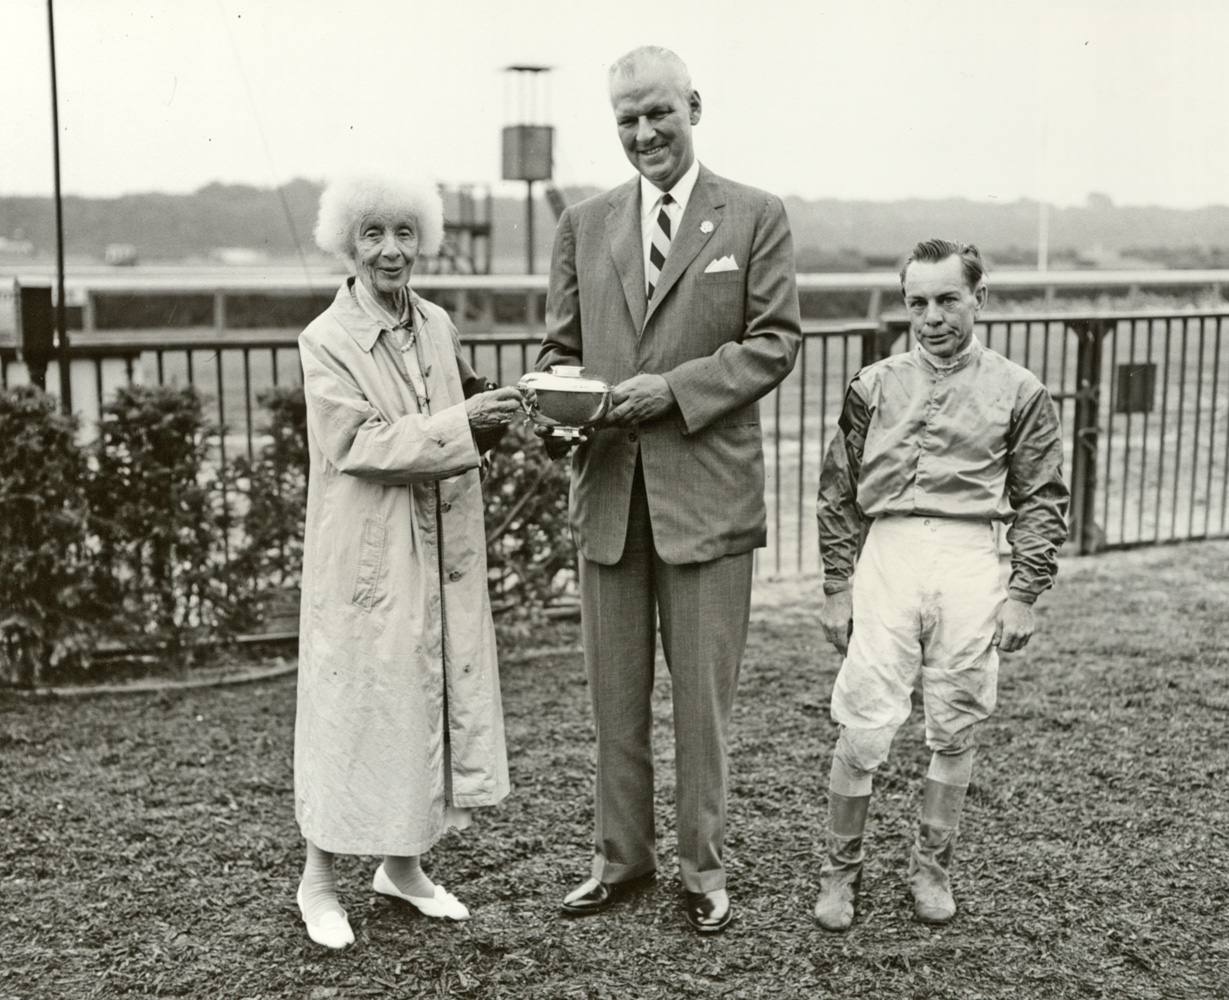 Gladys Mills Phipps, F. C. Rand, and R. Woodhouse at a trophy presentation in 1962 (Keeneland Library Thoroughbred Times Collection)